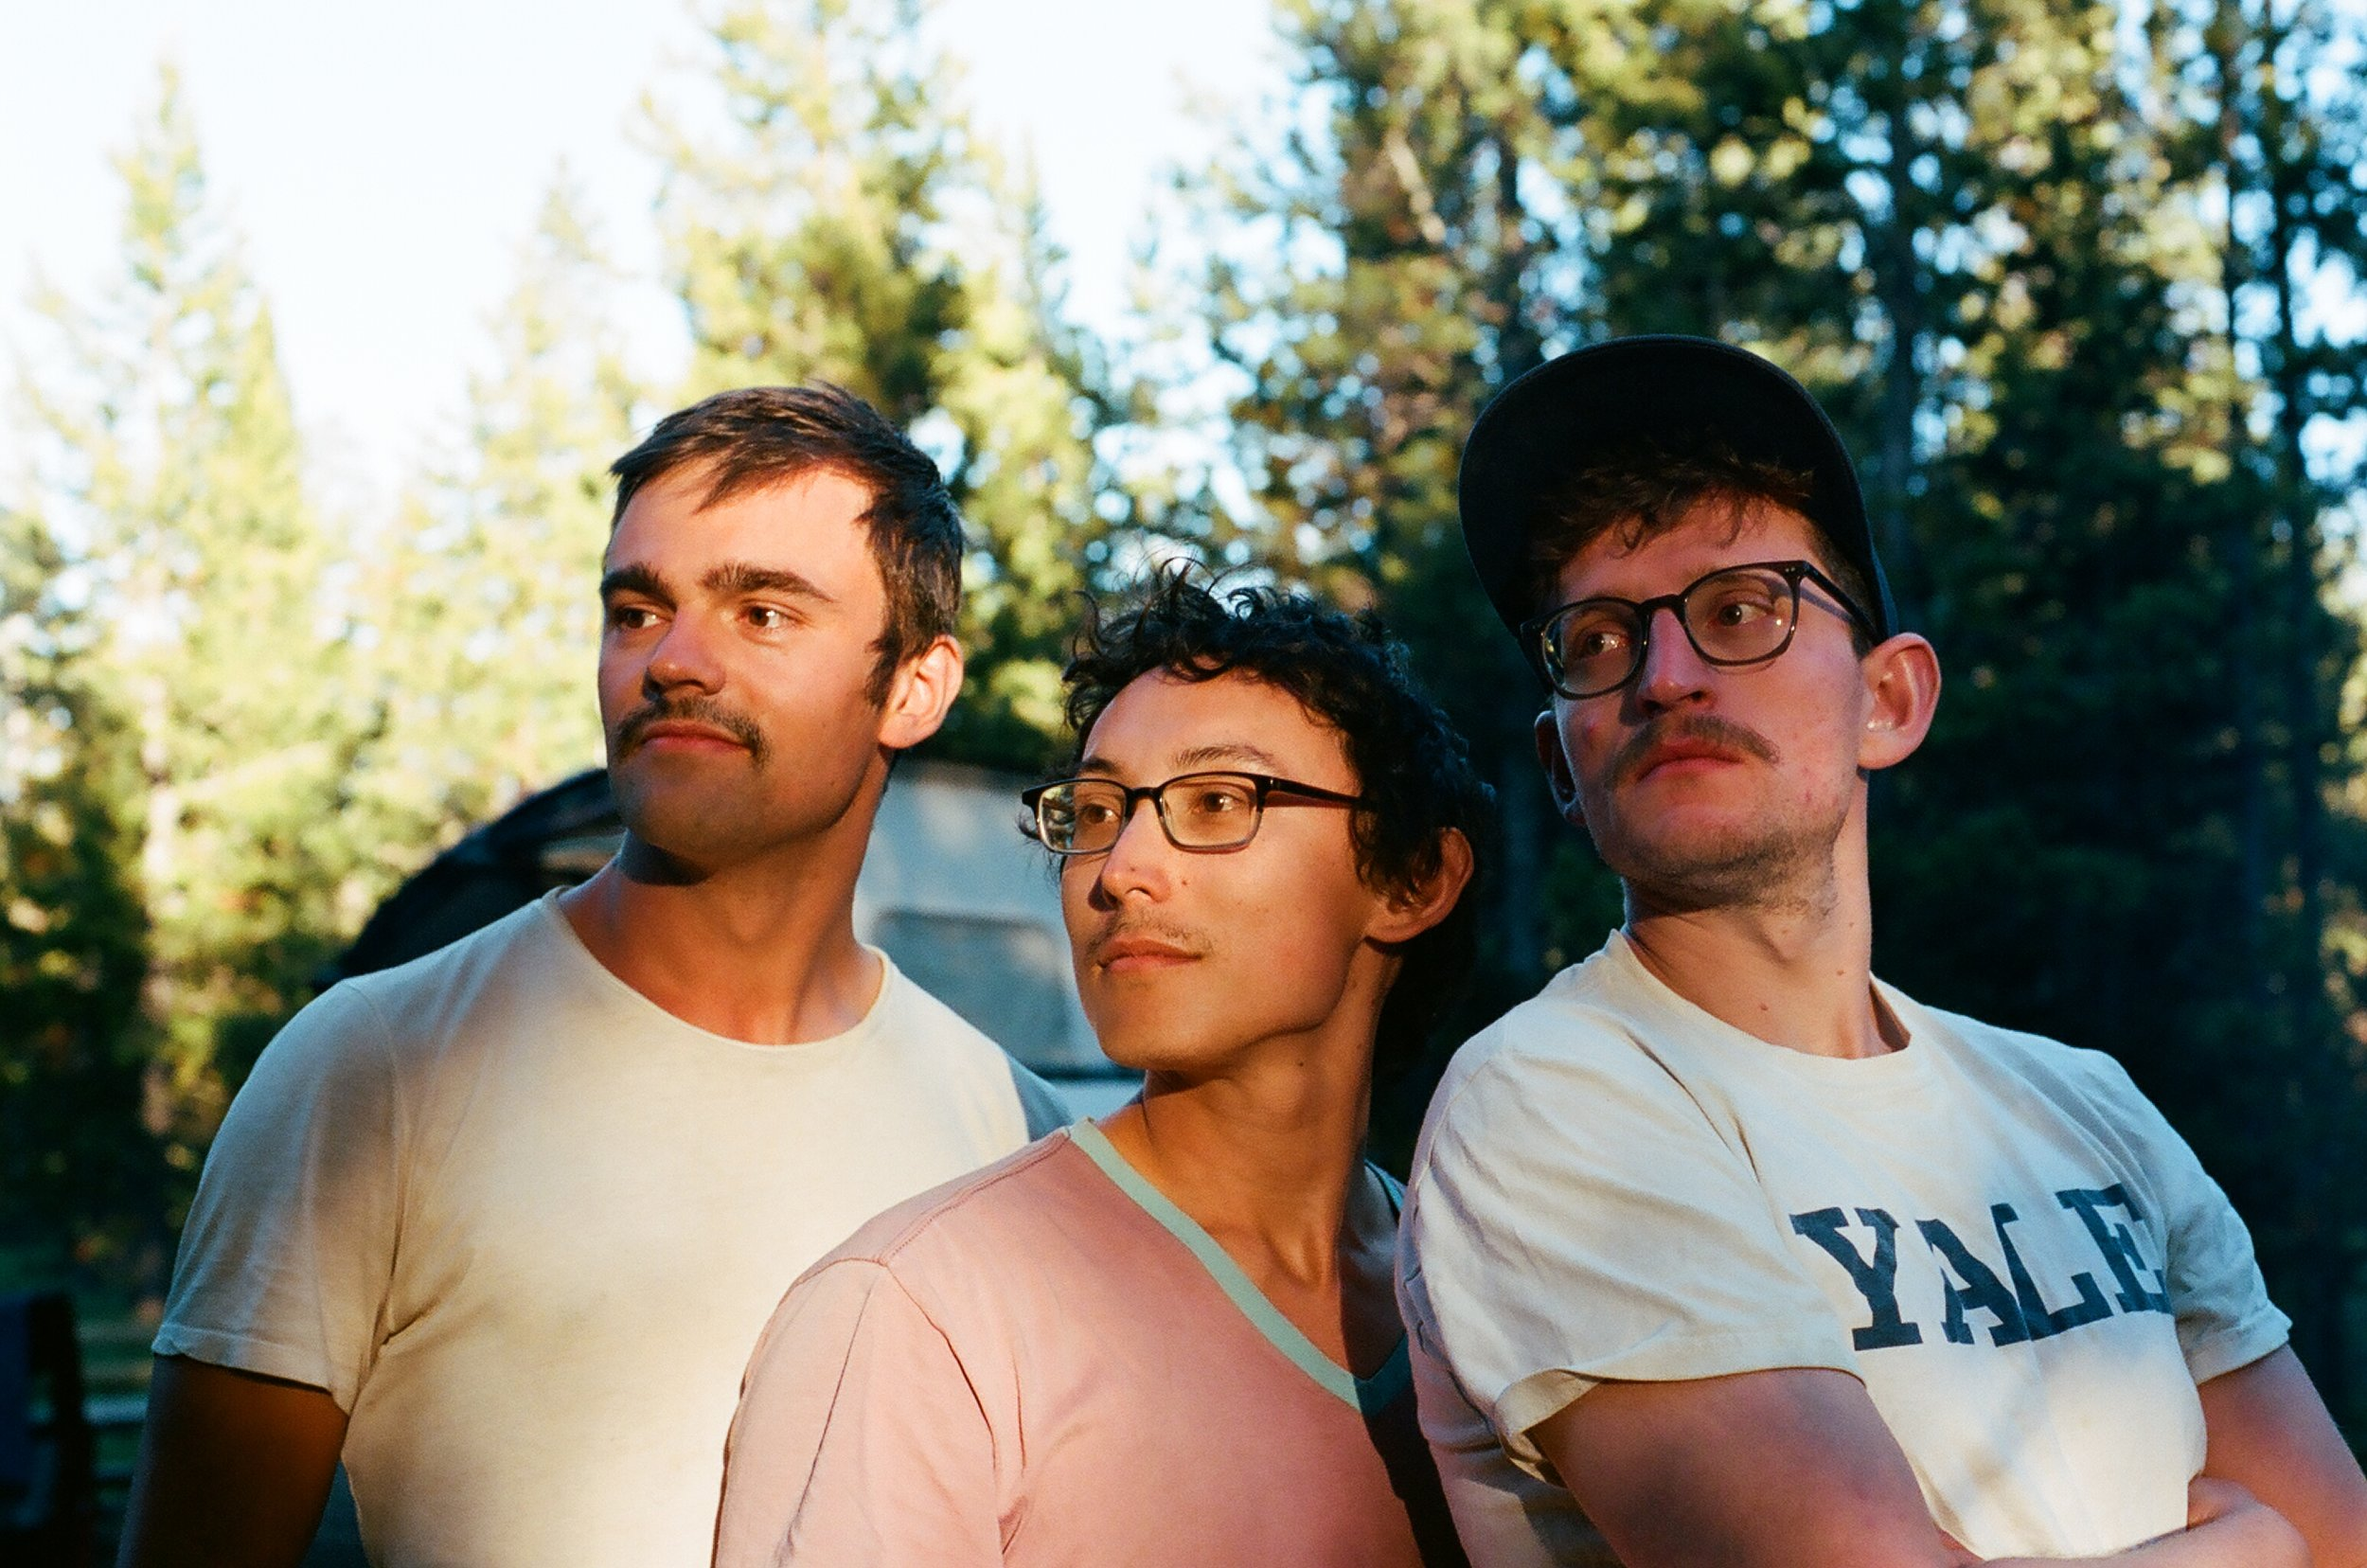 Tom, Owen, and Jamie showing off their mustaches, 35mm